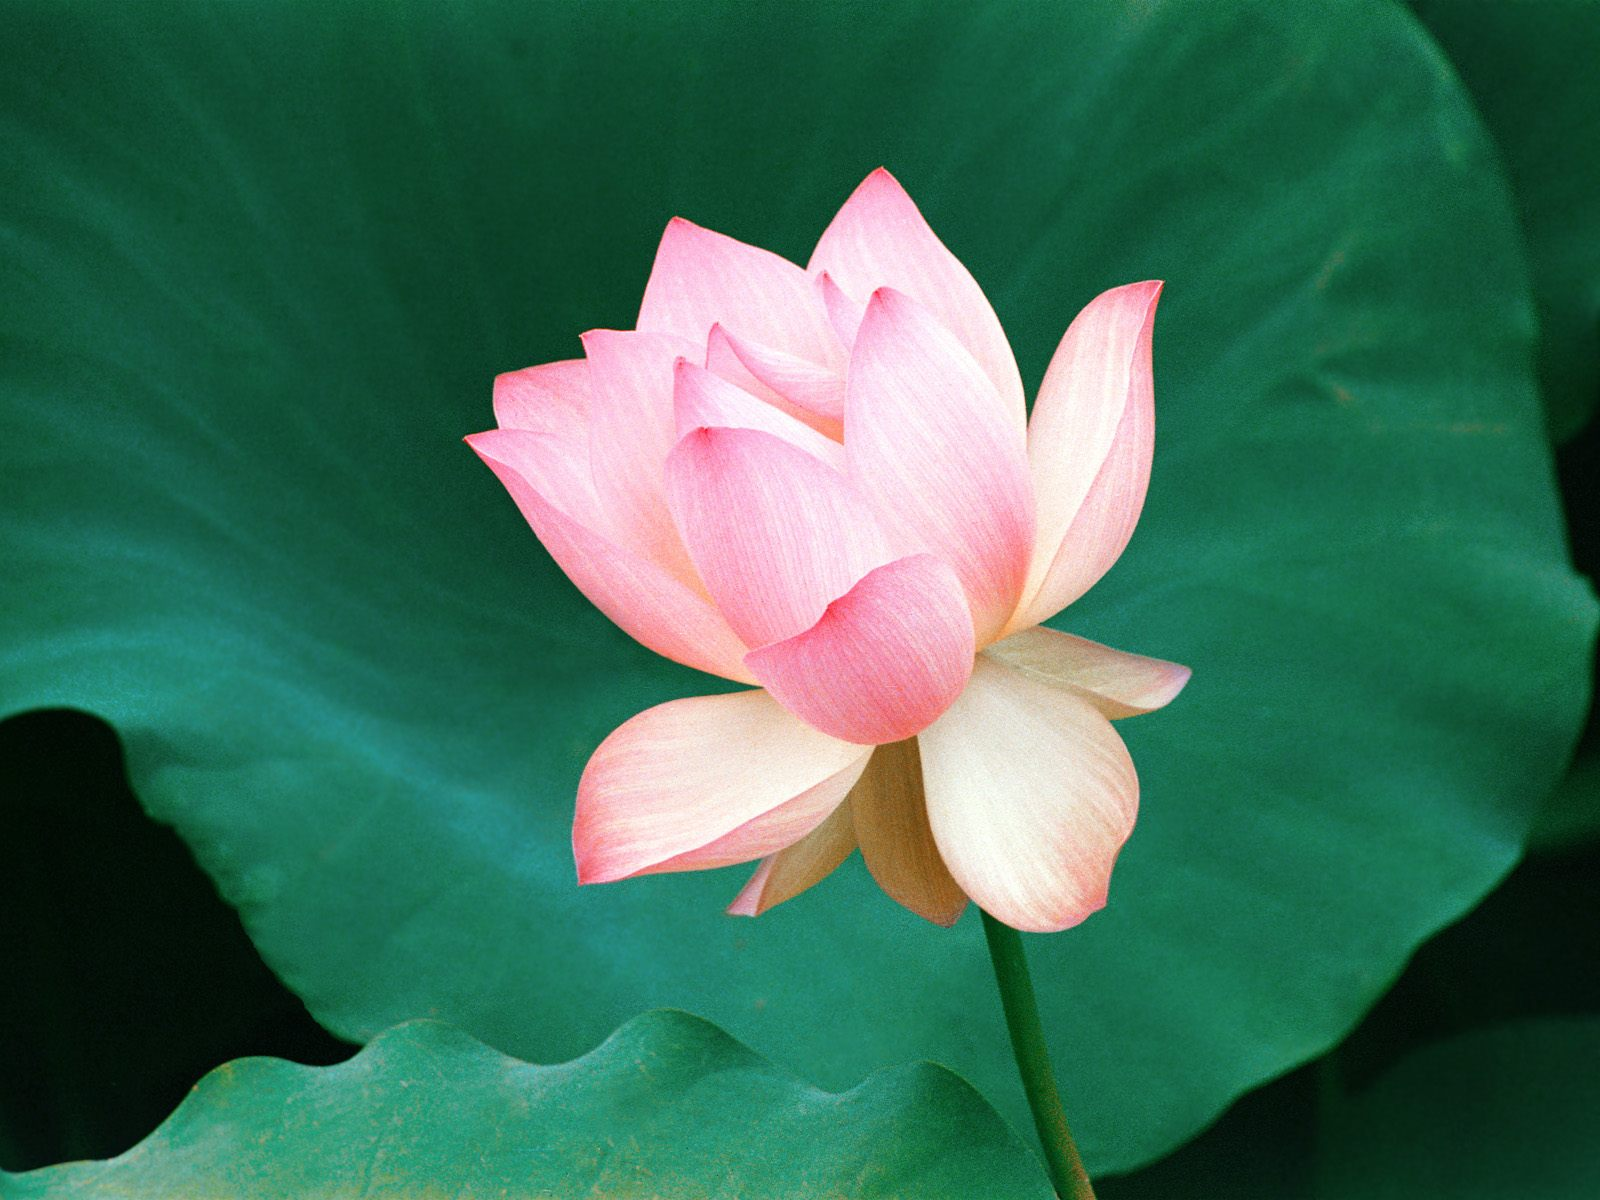 lotus flower hd wallpapers best desktop background pictures widescreen 952